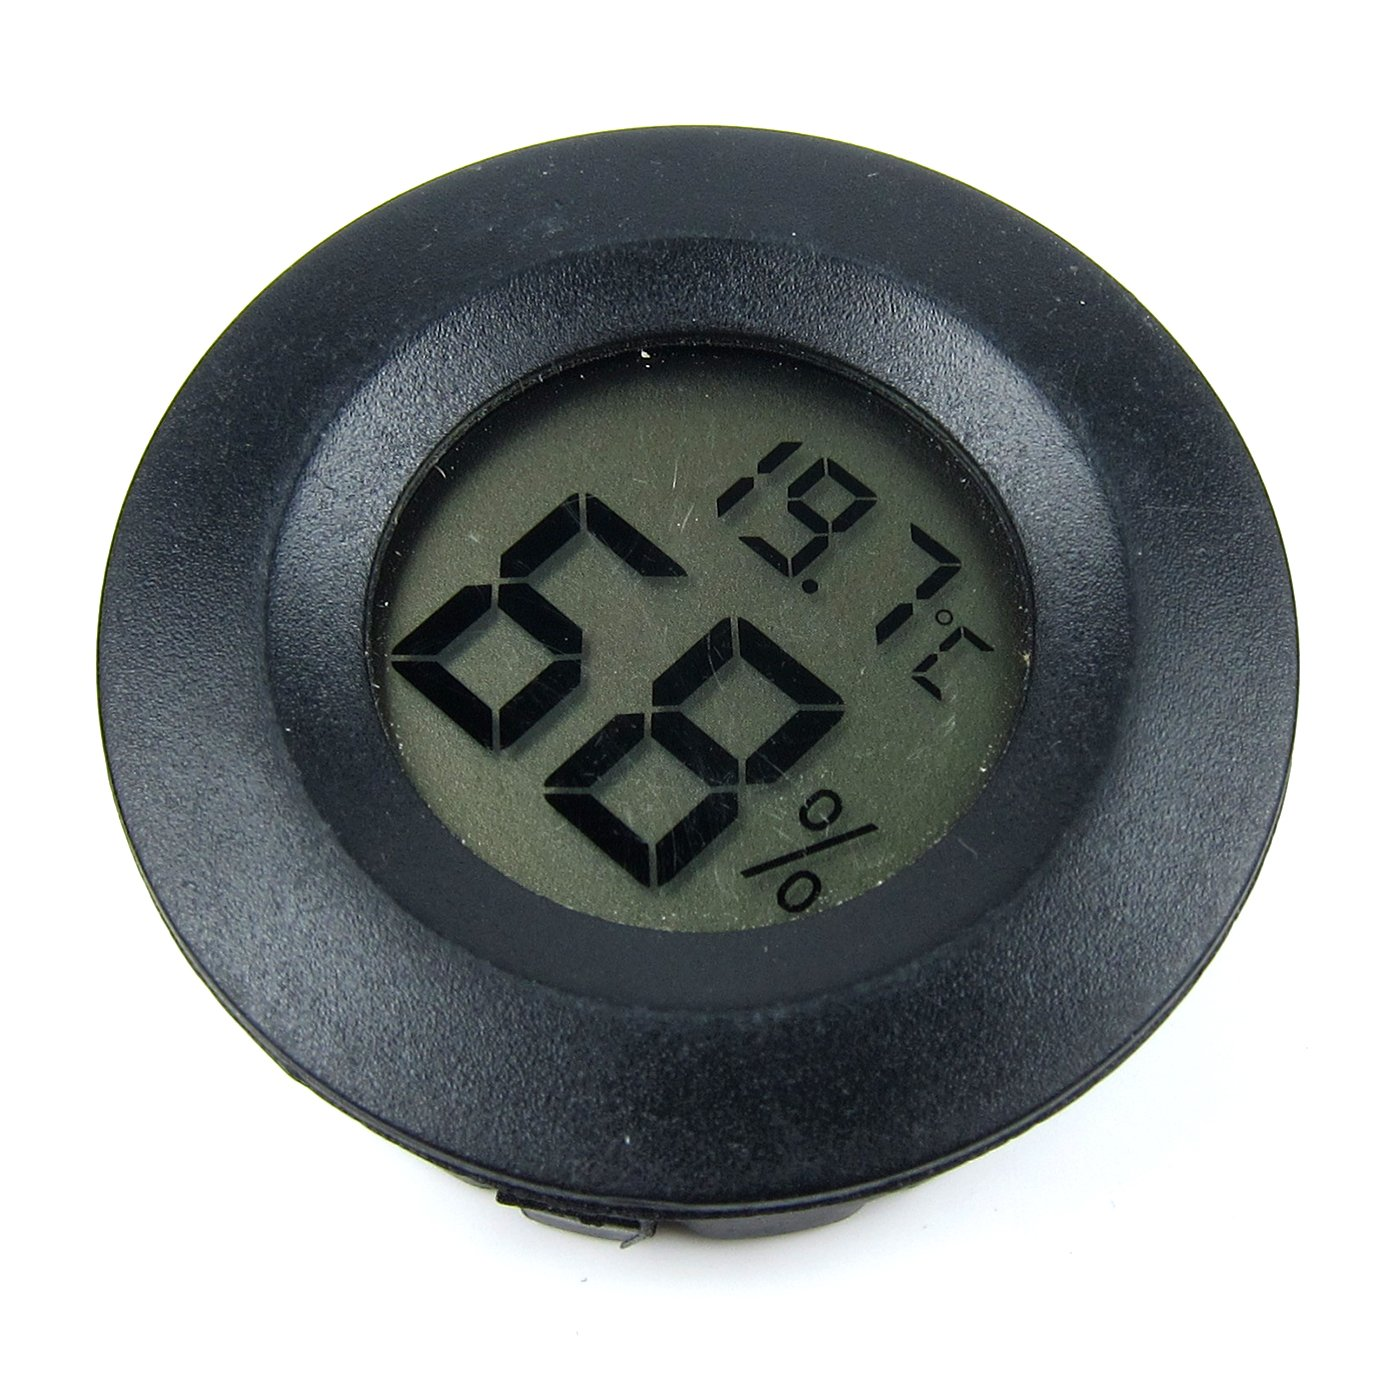 Alfie Pet - Misha Digital Thermometer and Hygrometer - Color: Black by Alfie